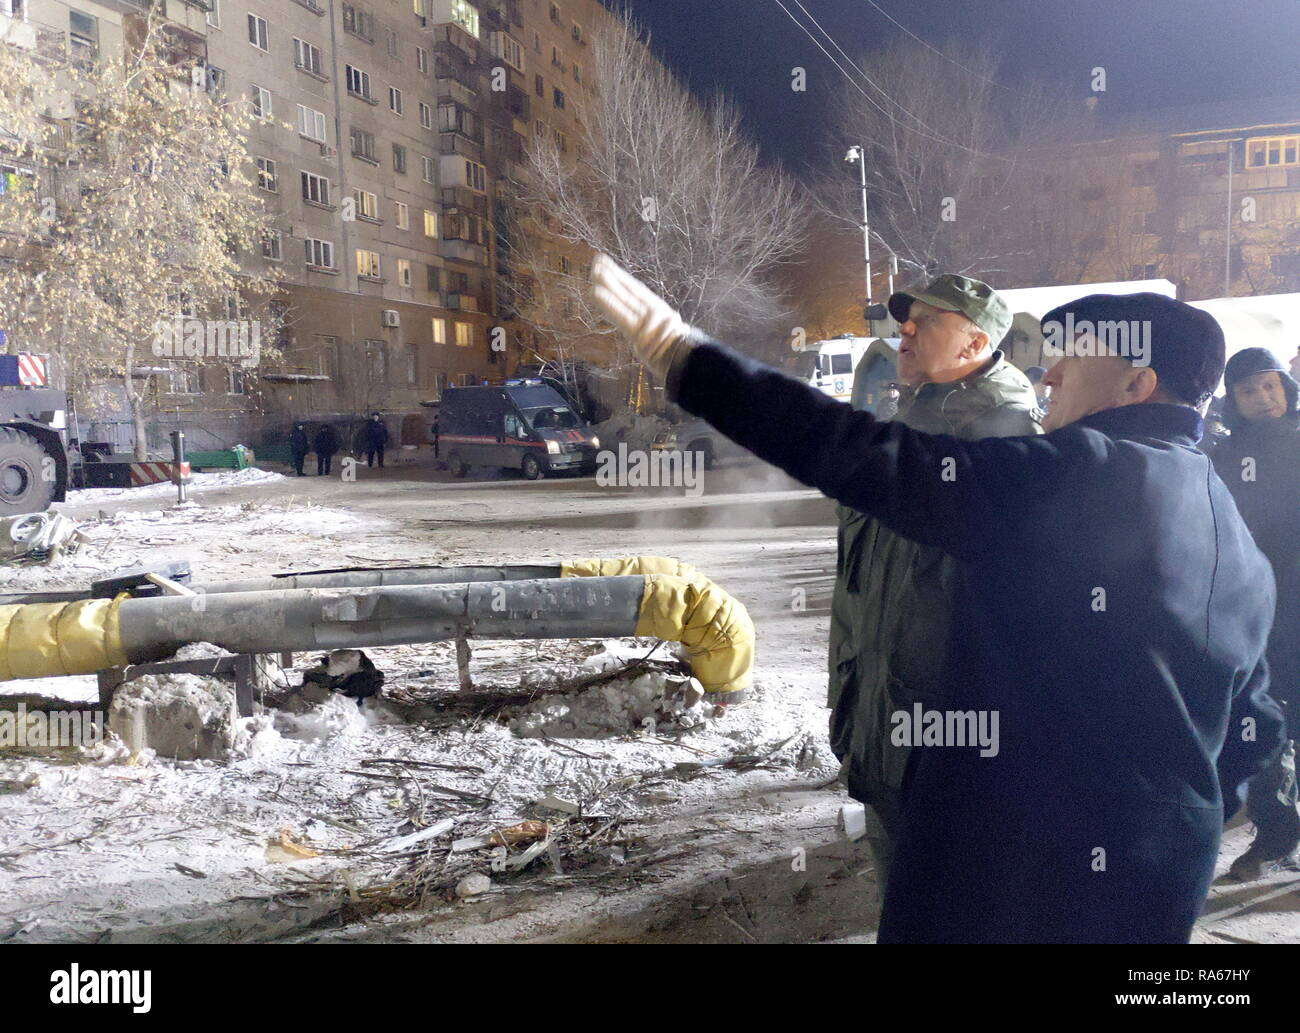 Magnitogorsk, Russia. 01st Jan, 2019. MAGNITOGORSK, RUSSIA - JANUARY 1, 2019: Russian Investigative Committee (SK) Chairman Alexander Bastrykin (L) and Chelyabinsk Region Governor Boris Dubrovsky at the site of an apartment block collapse. On December 31, 2018, a domestic gas explosion caused a partial collapse of a residential building at 164 Prospekt Karla Marksa Street killing nine people and leaving dozens missing. Press Office of the Chelyabinsk Region Governor/TASS Credit: ITAR-TASS News Agency/Alamy Live News - Stock Image